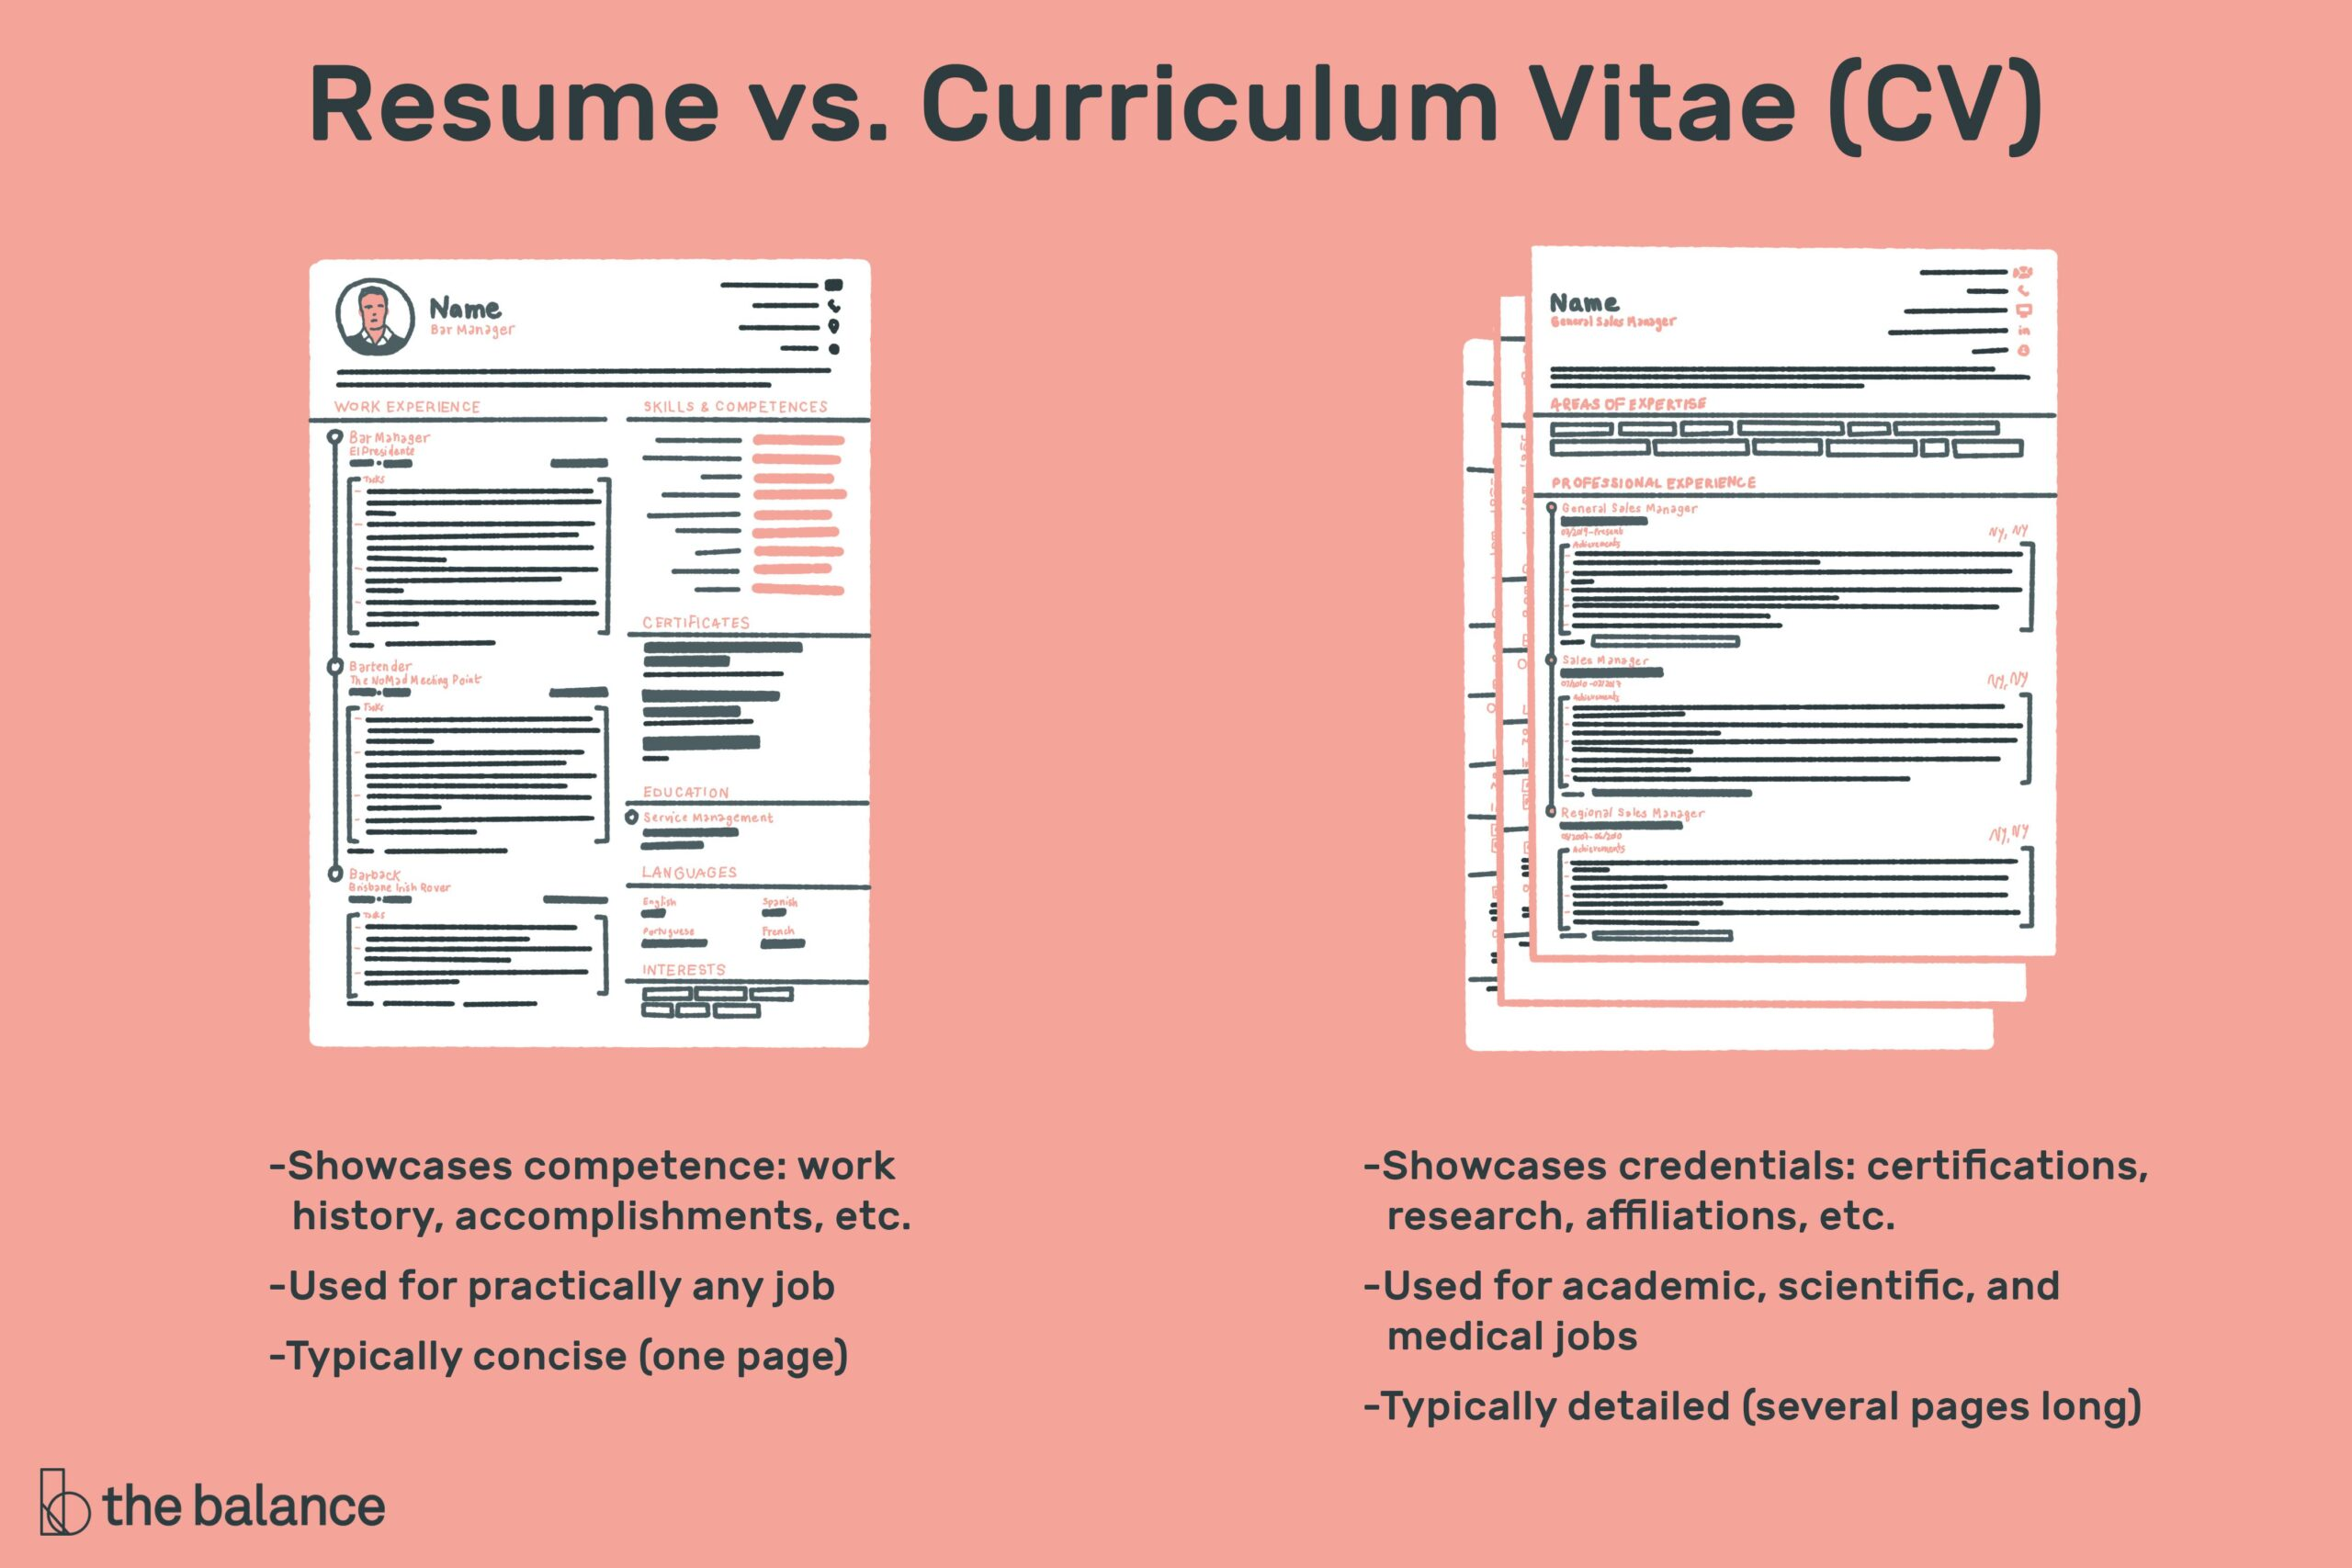 the difference between resume and curriculum vitae education credentials on cv vs final Resume Education Credentials On Resume